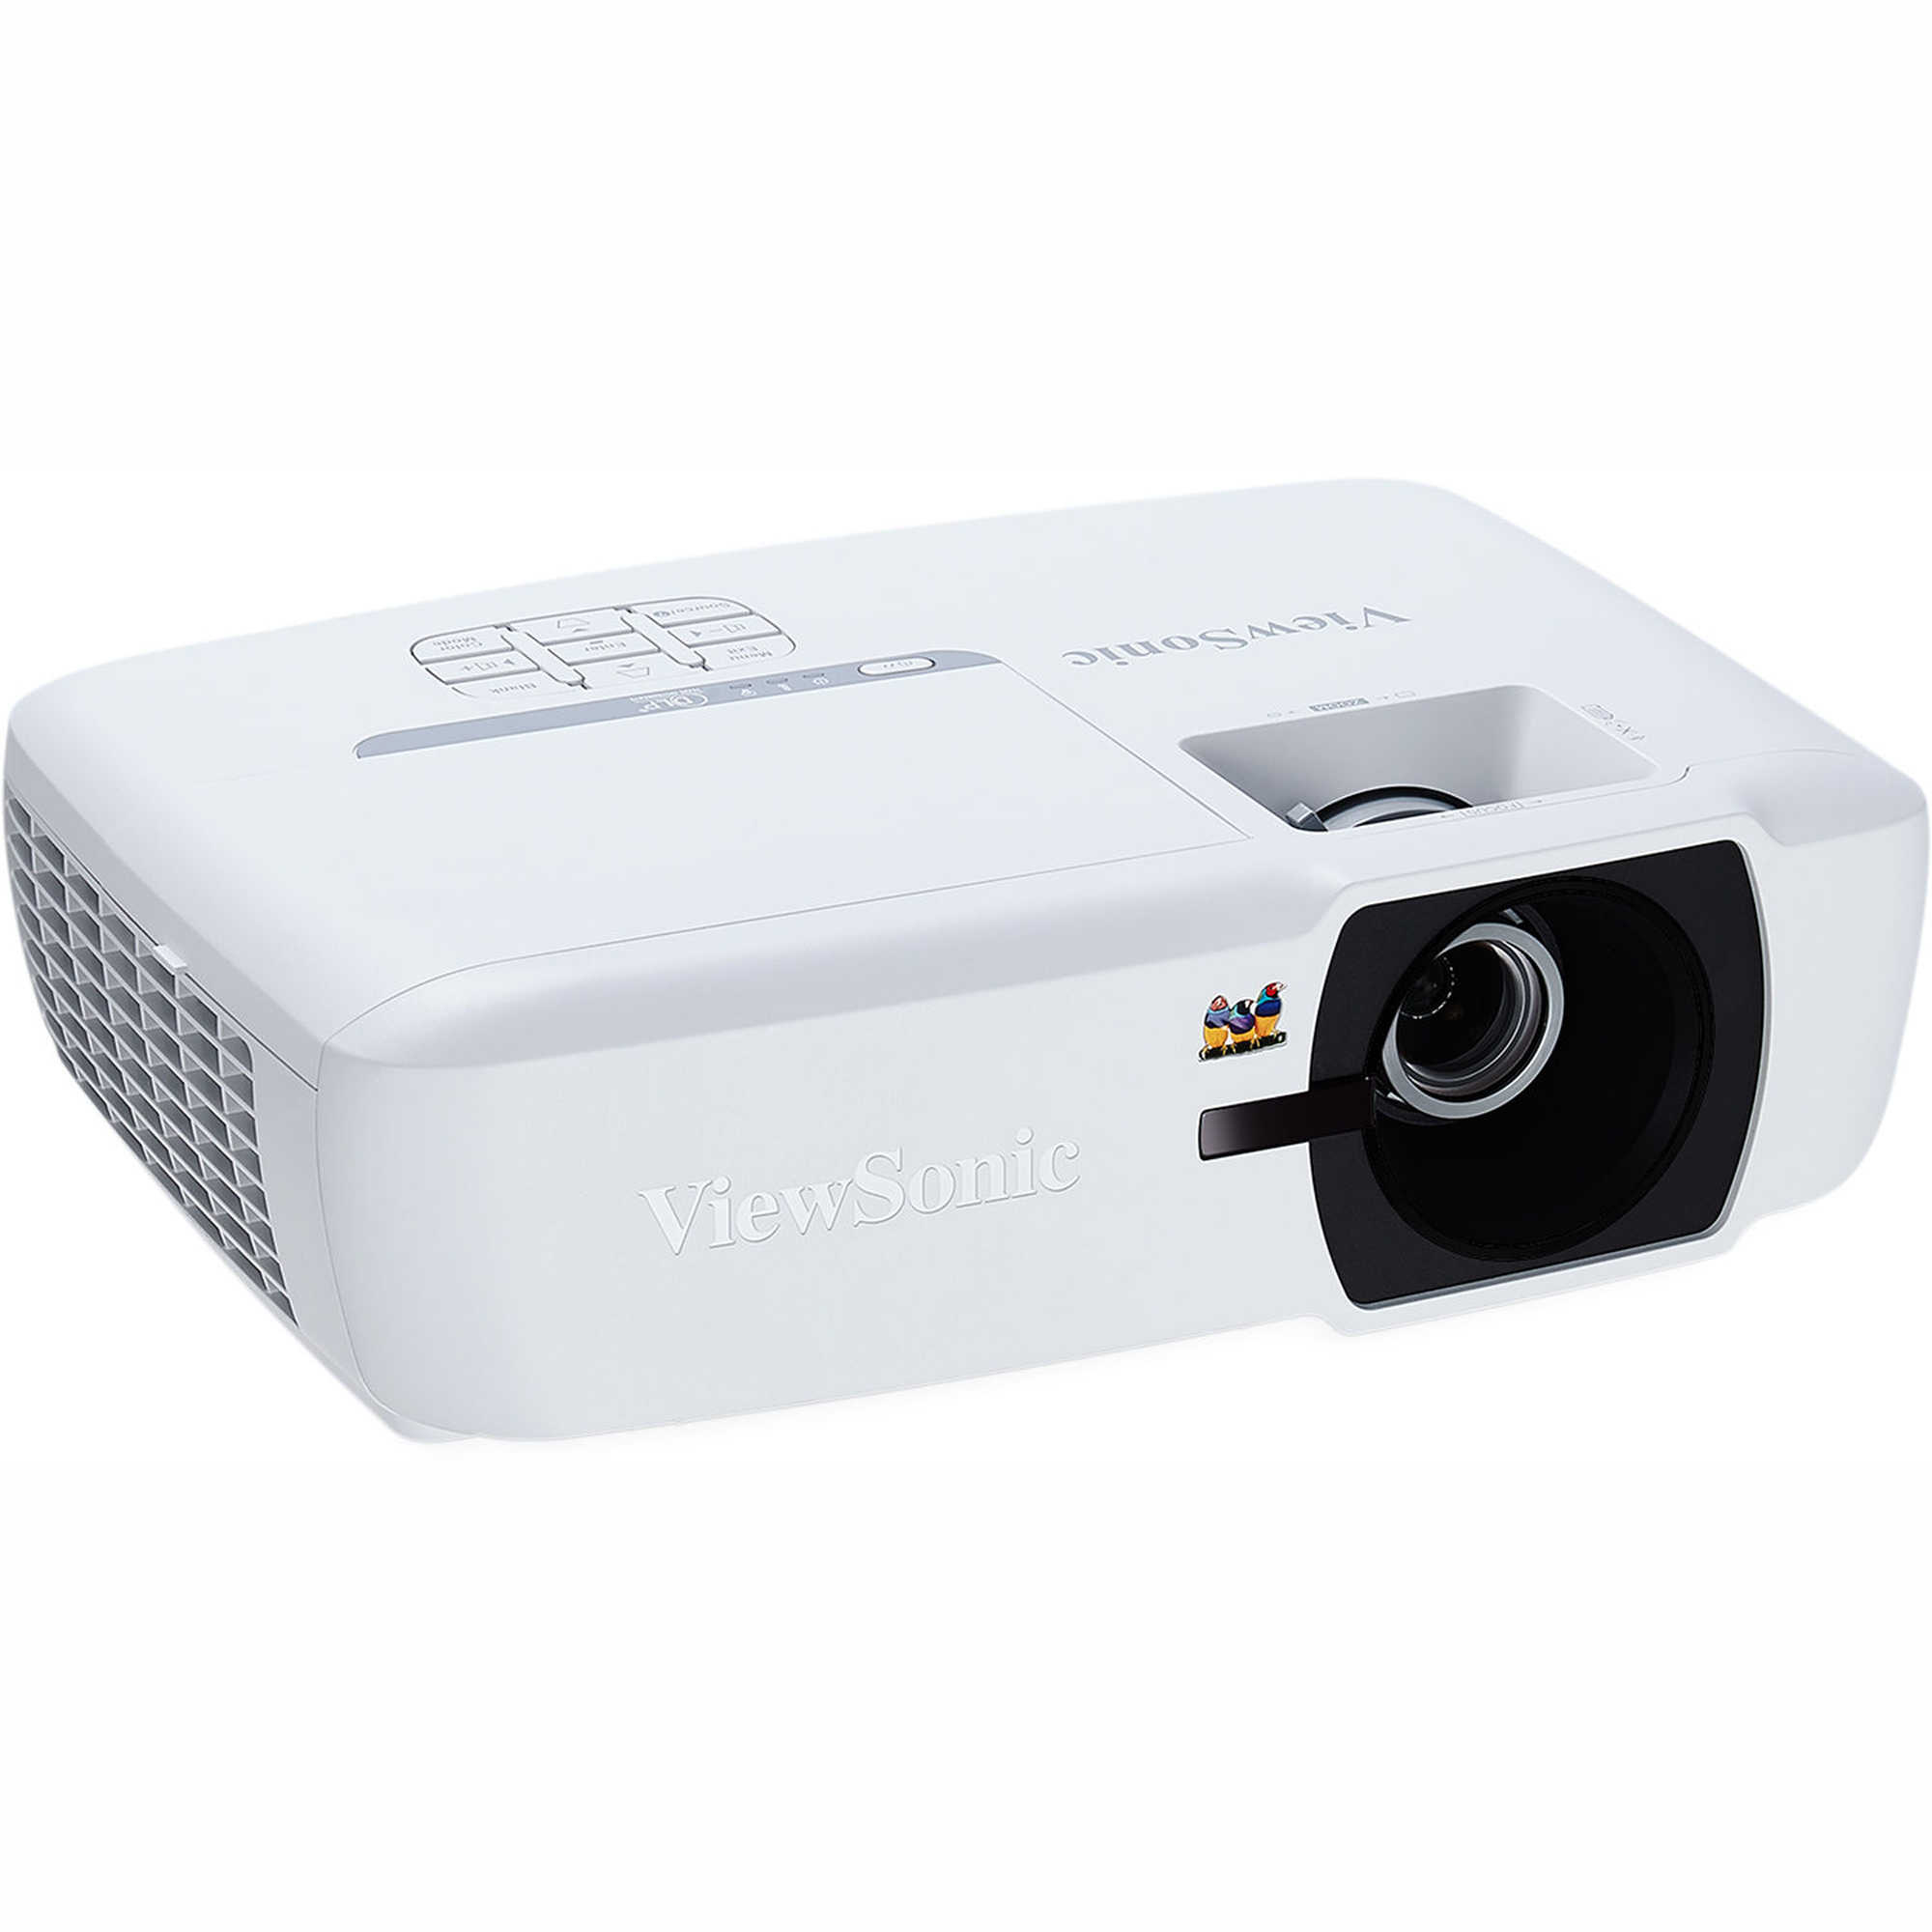 ViewSonic PA505W WXGA DLP Projector, 1280x800, 3,500 lumens, Exclusive SuperColor technology, extensive connectivity including 2x HDMI, 2x VGA in, Composite Video, 1x VGA output